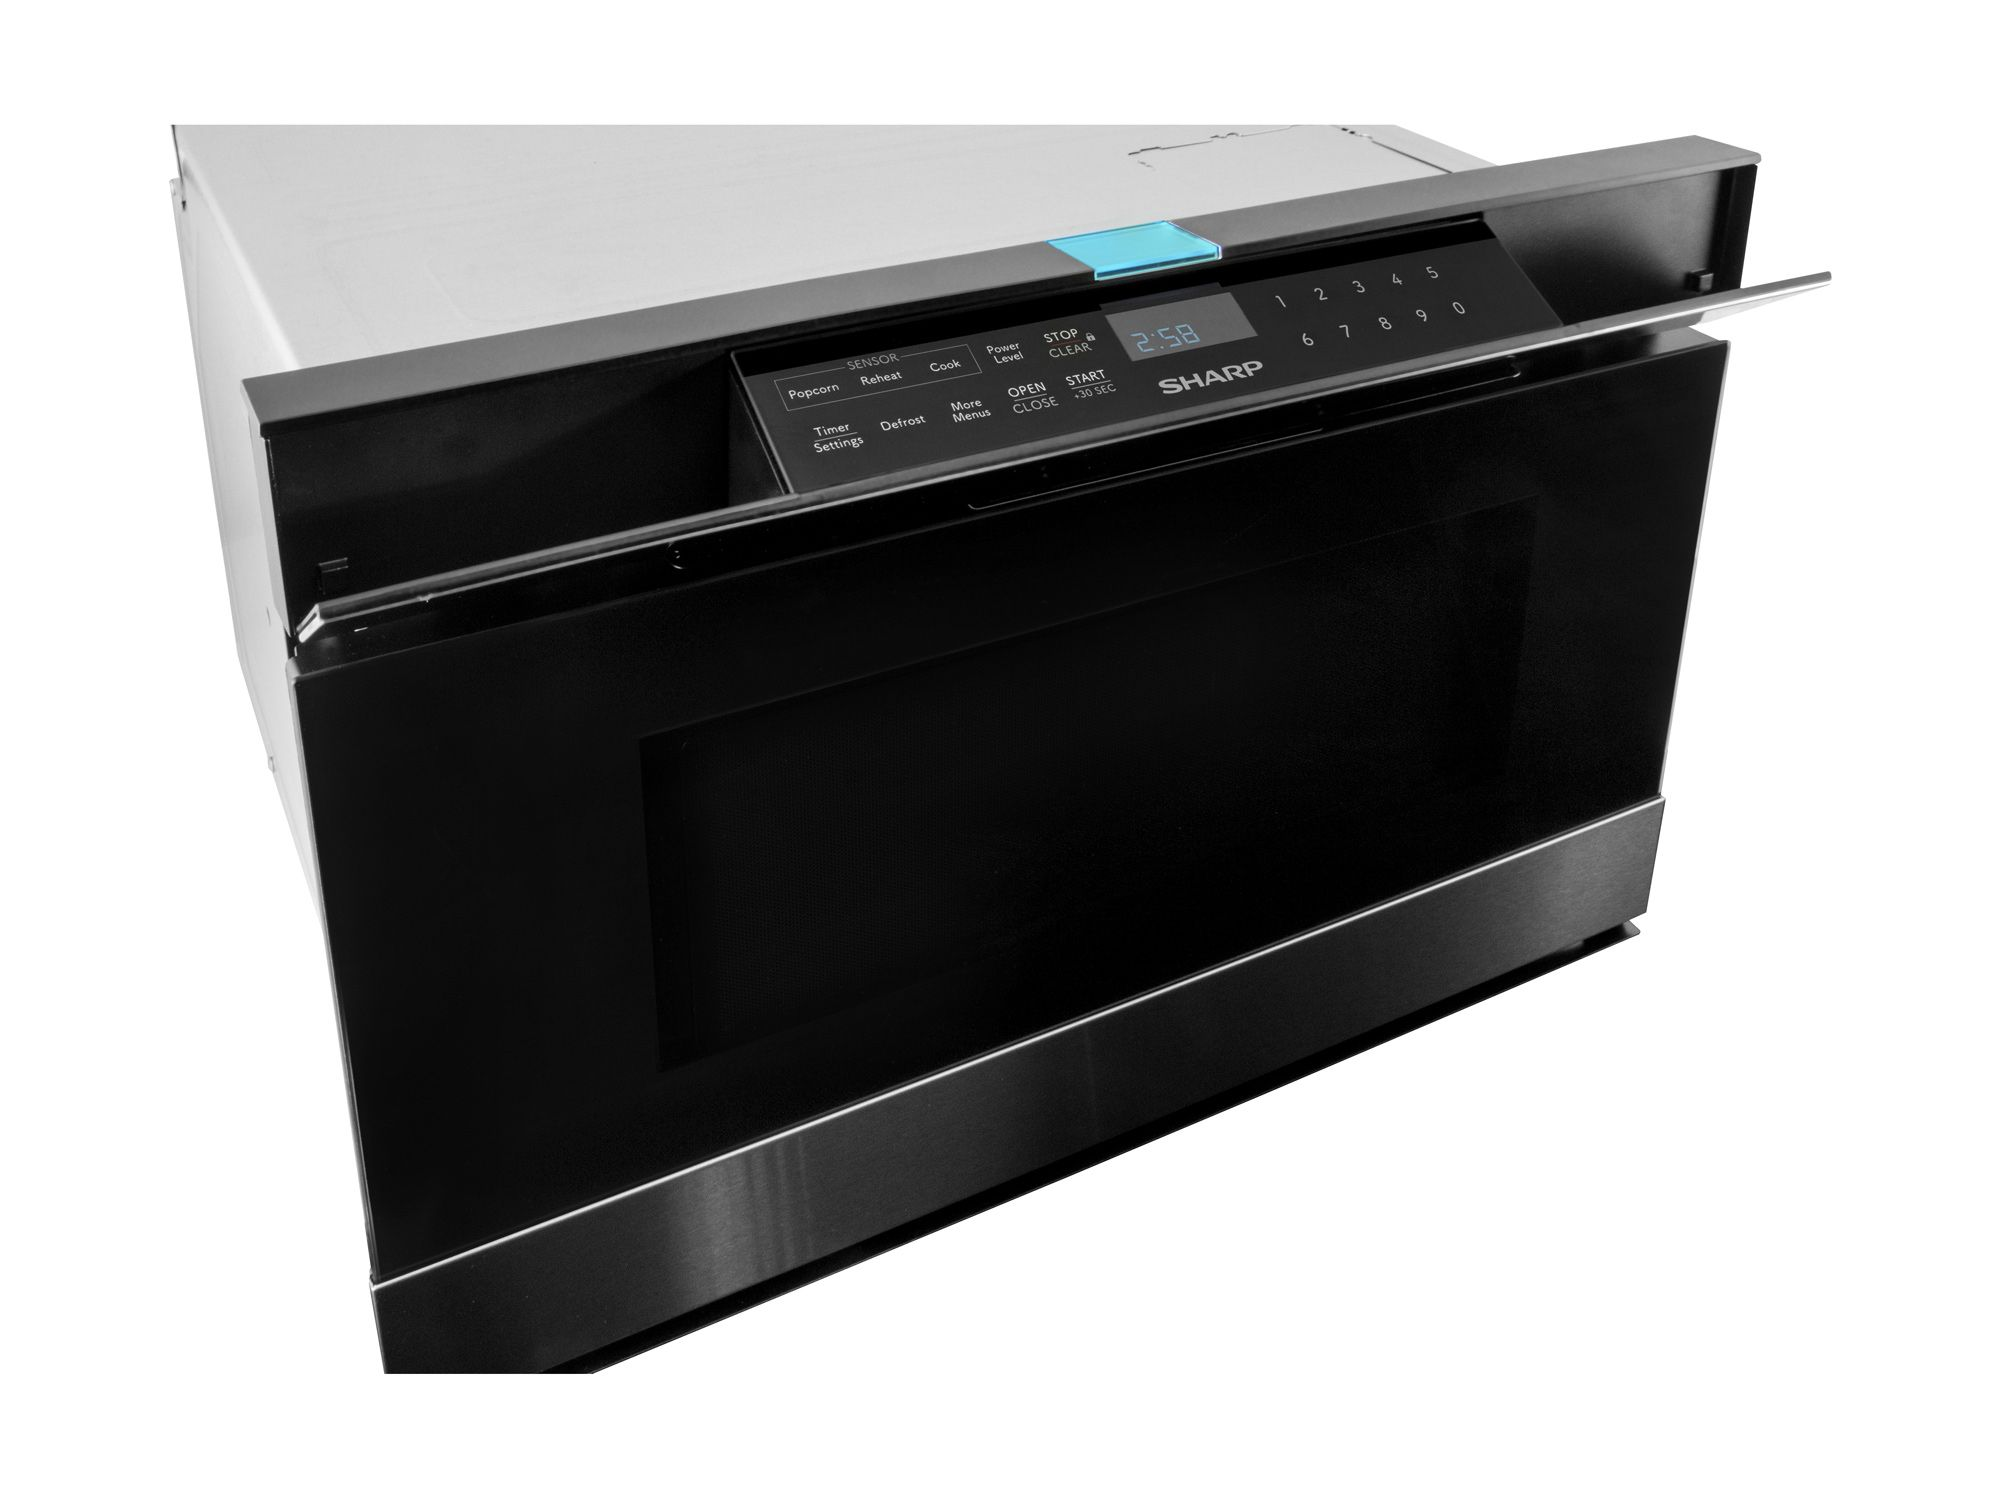 ovens canada mdte drawer steel design stainless transitional with wolf air drawers oven sharp microwave